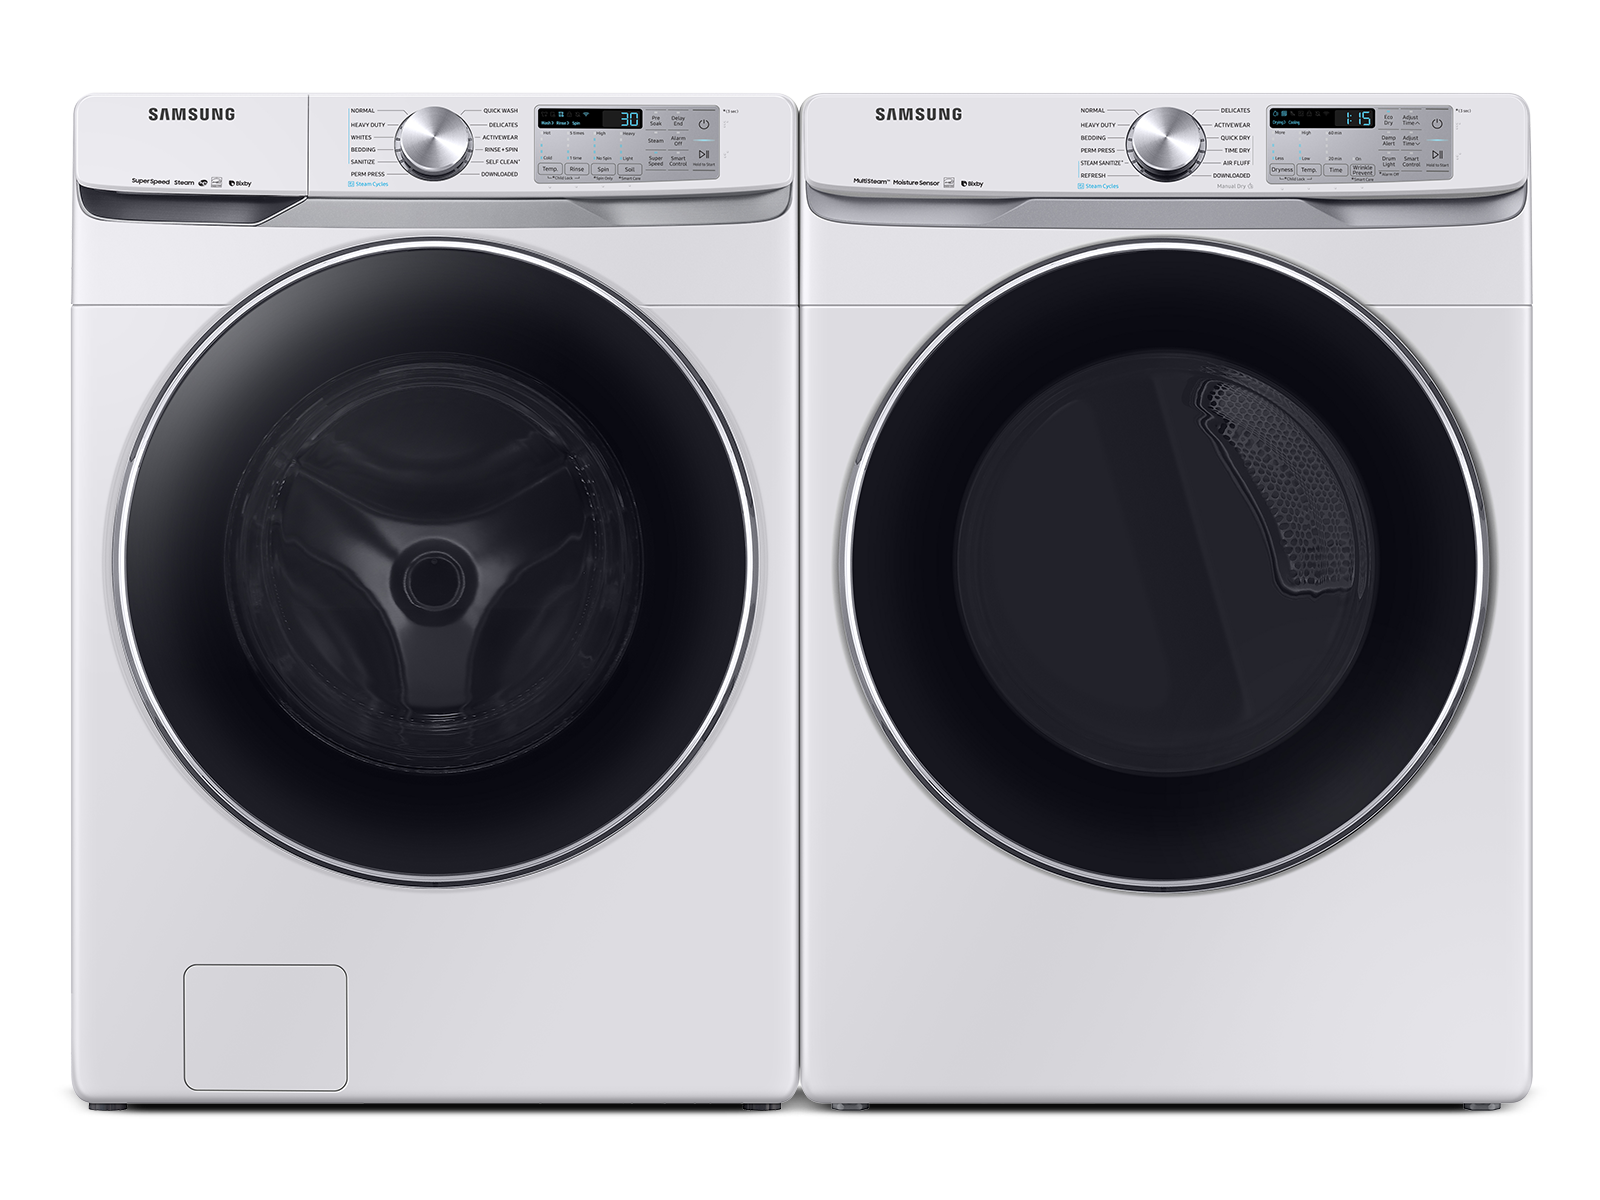 Samsung coupon: Samsung Smart Front Load Washer & Dryer Set with Super Speed and Steam Sanitize+ in White(BNDL-1603918467523)